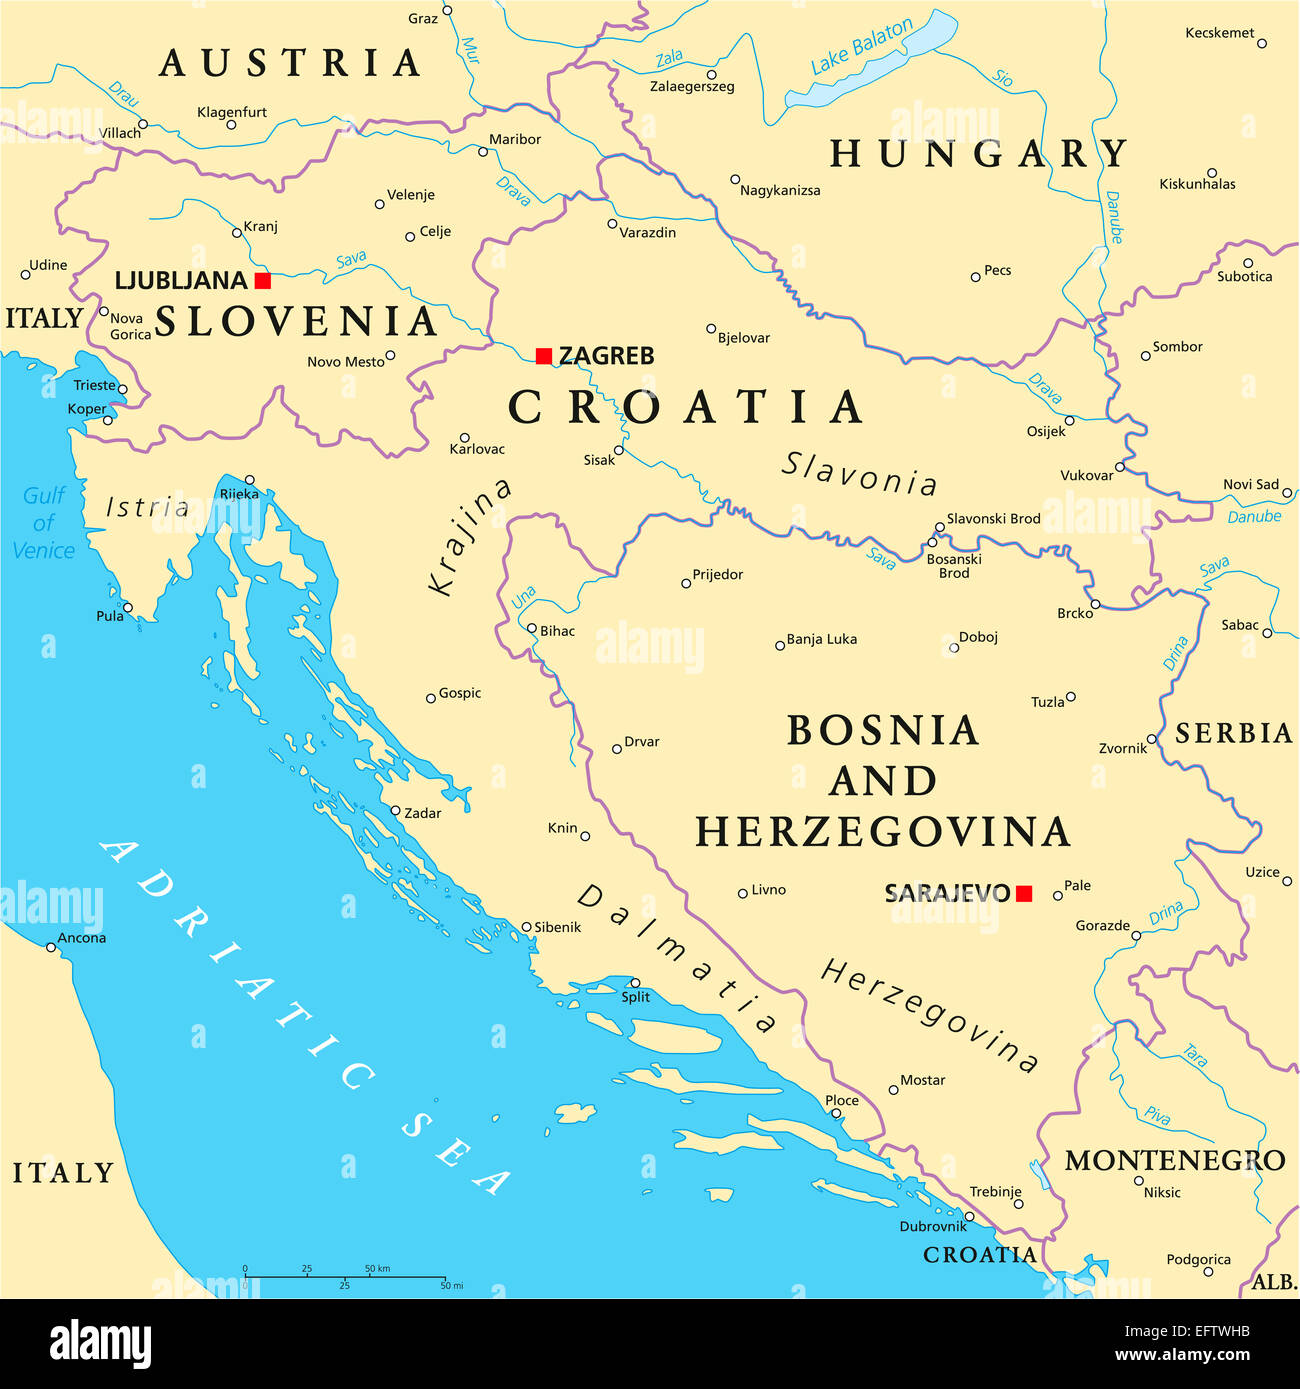 West Balkan Political Map - Stock Image